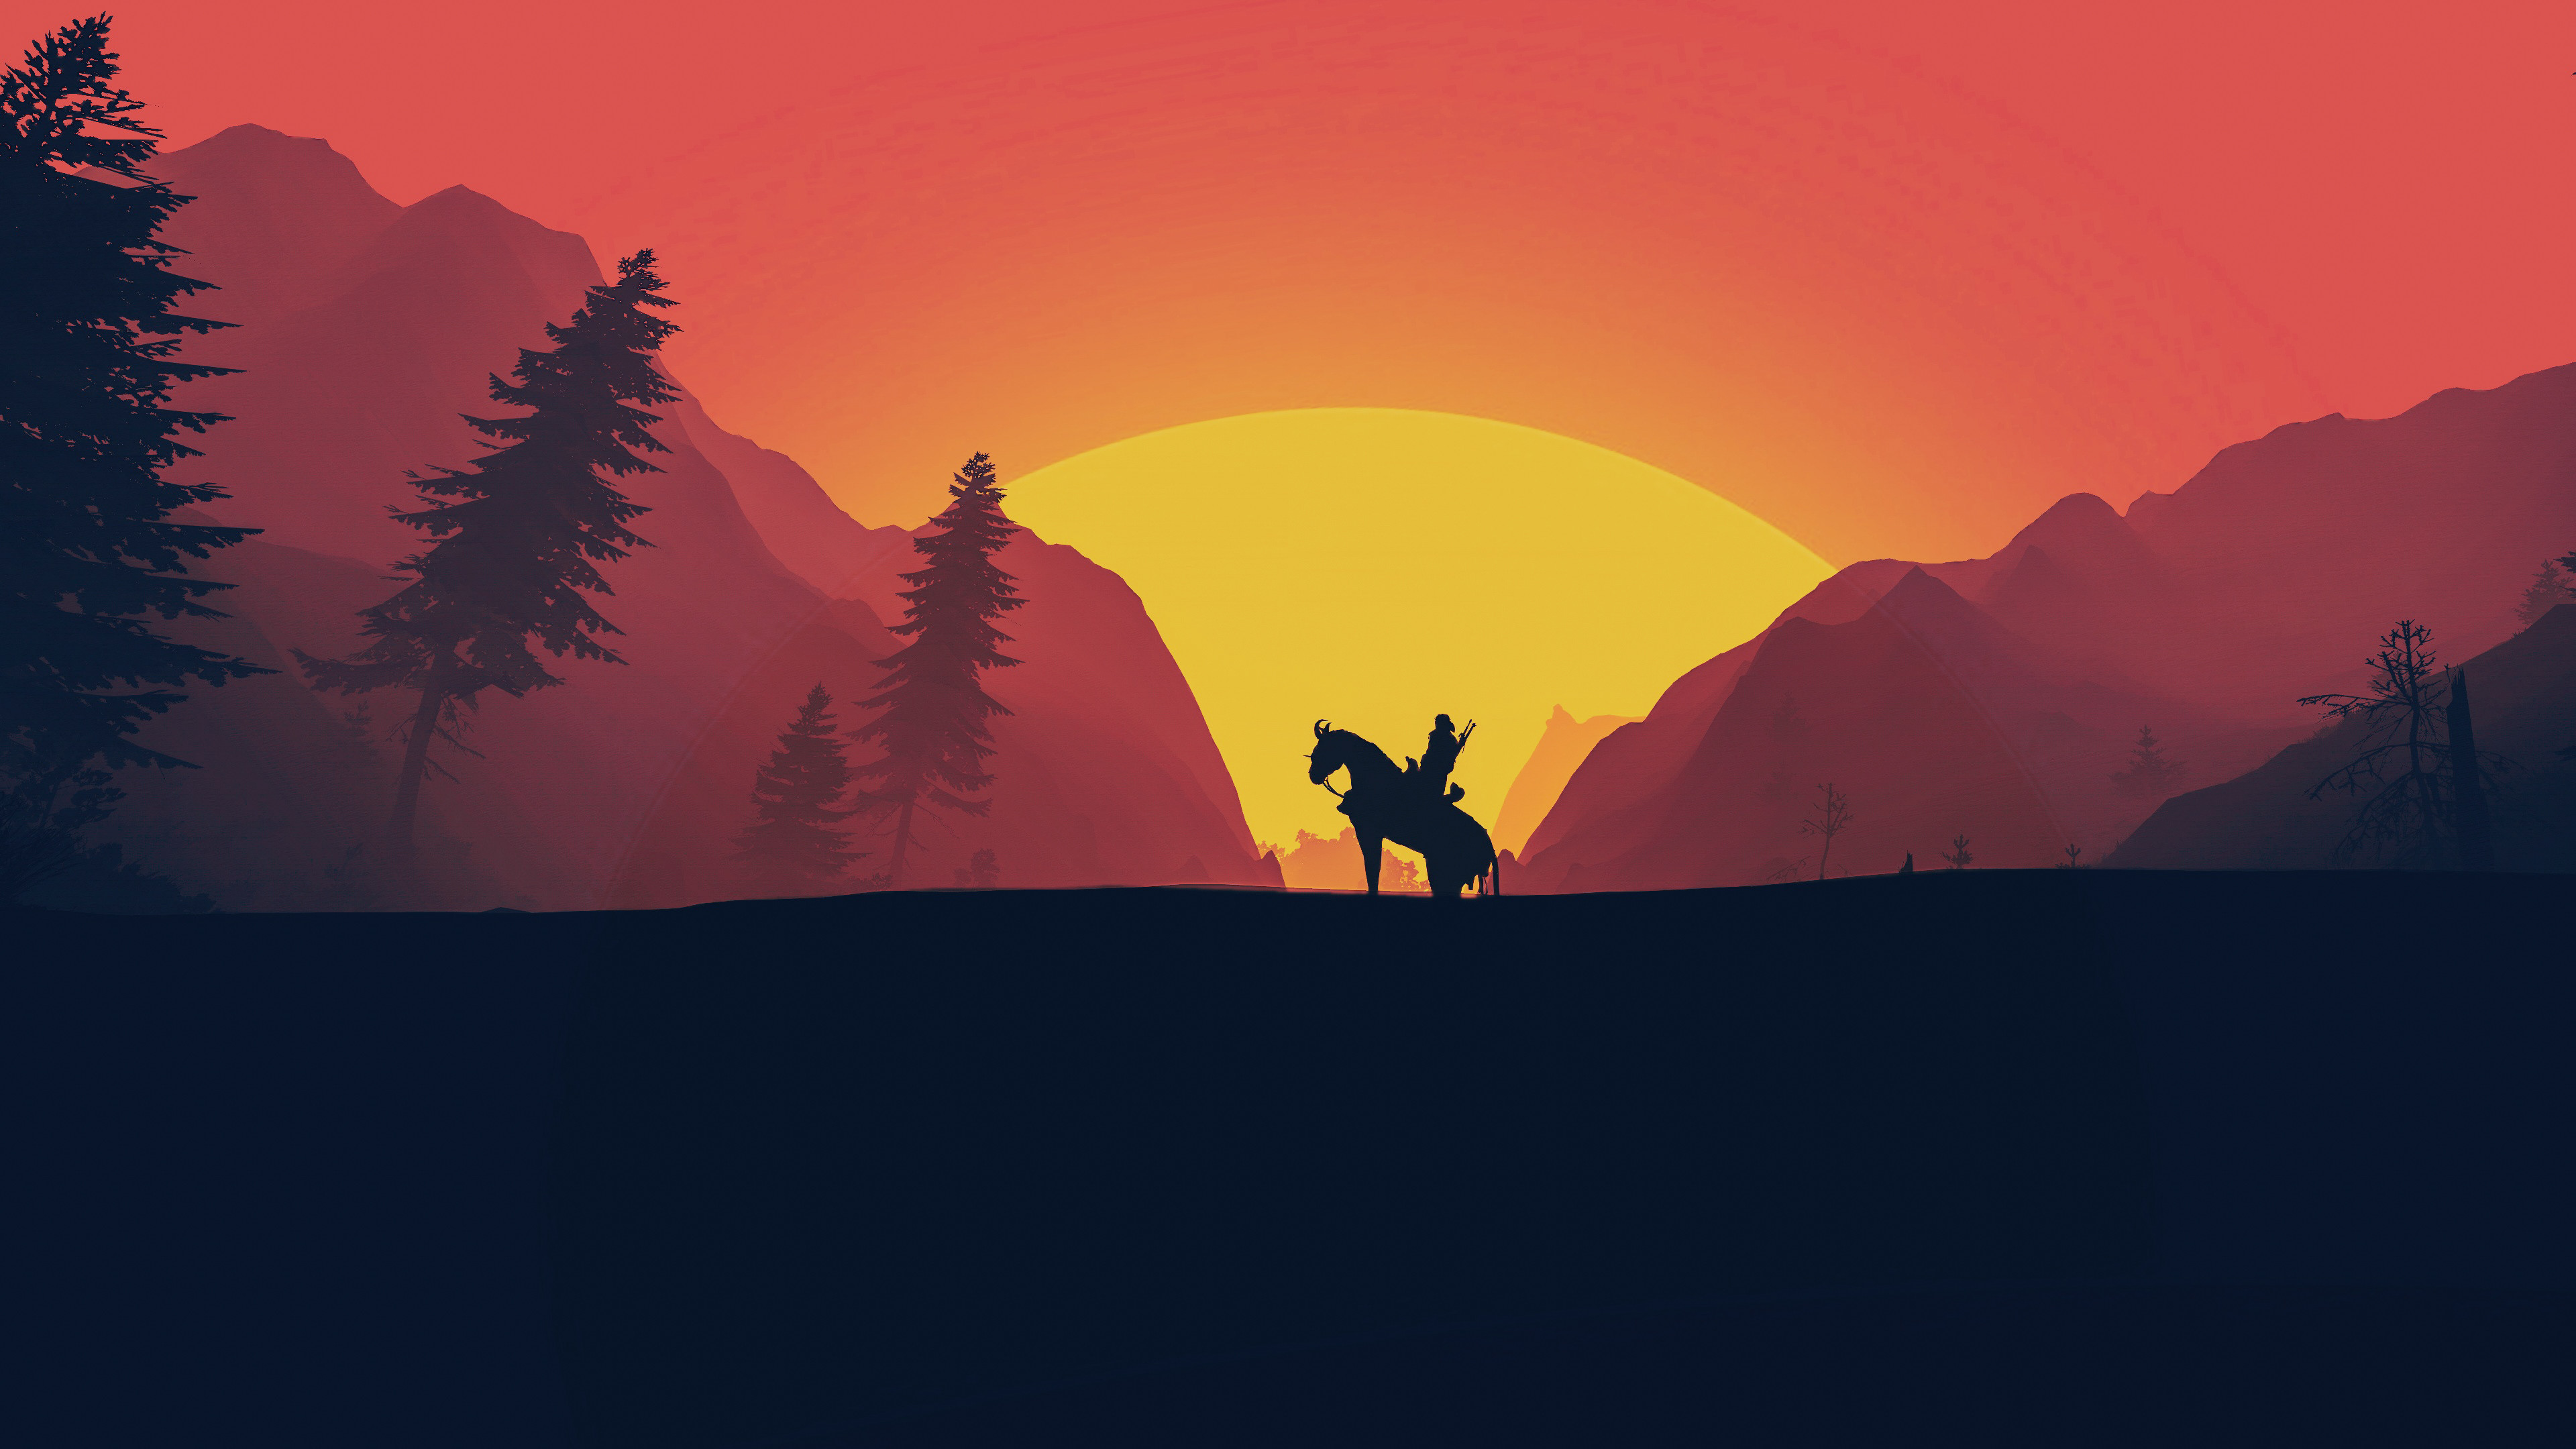 Wallpaper 4k The Witcher 3 Wild Hunt Minimal Art The Witcher 3